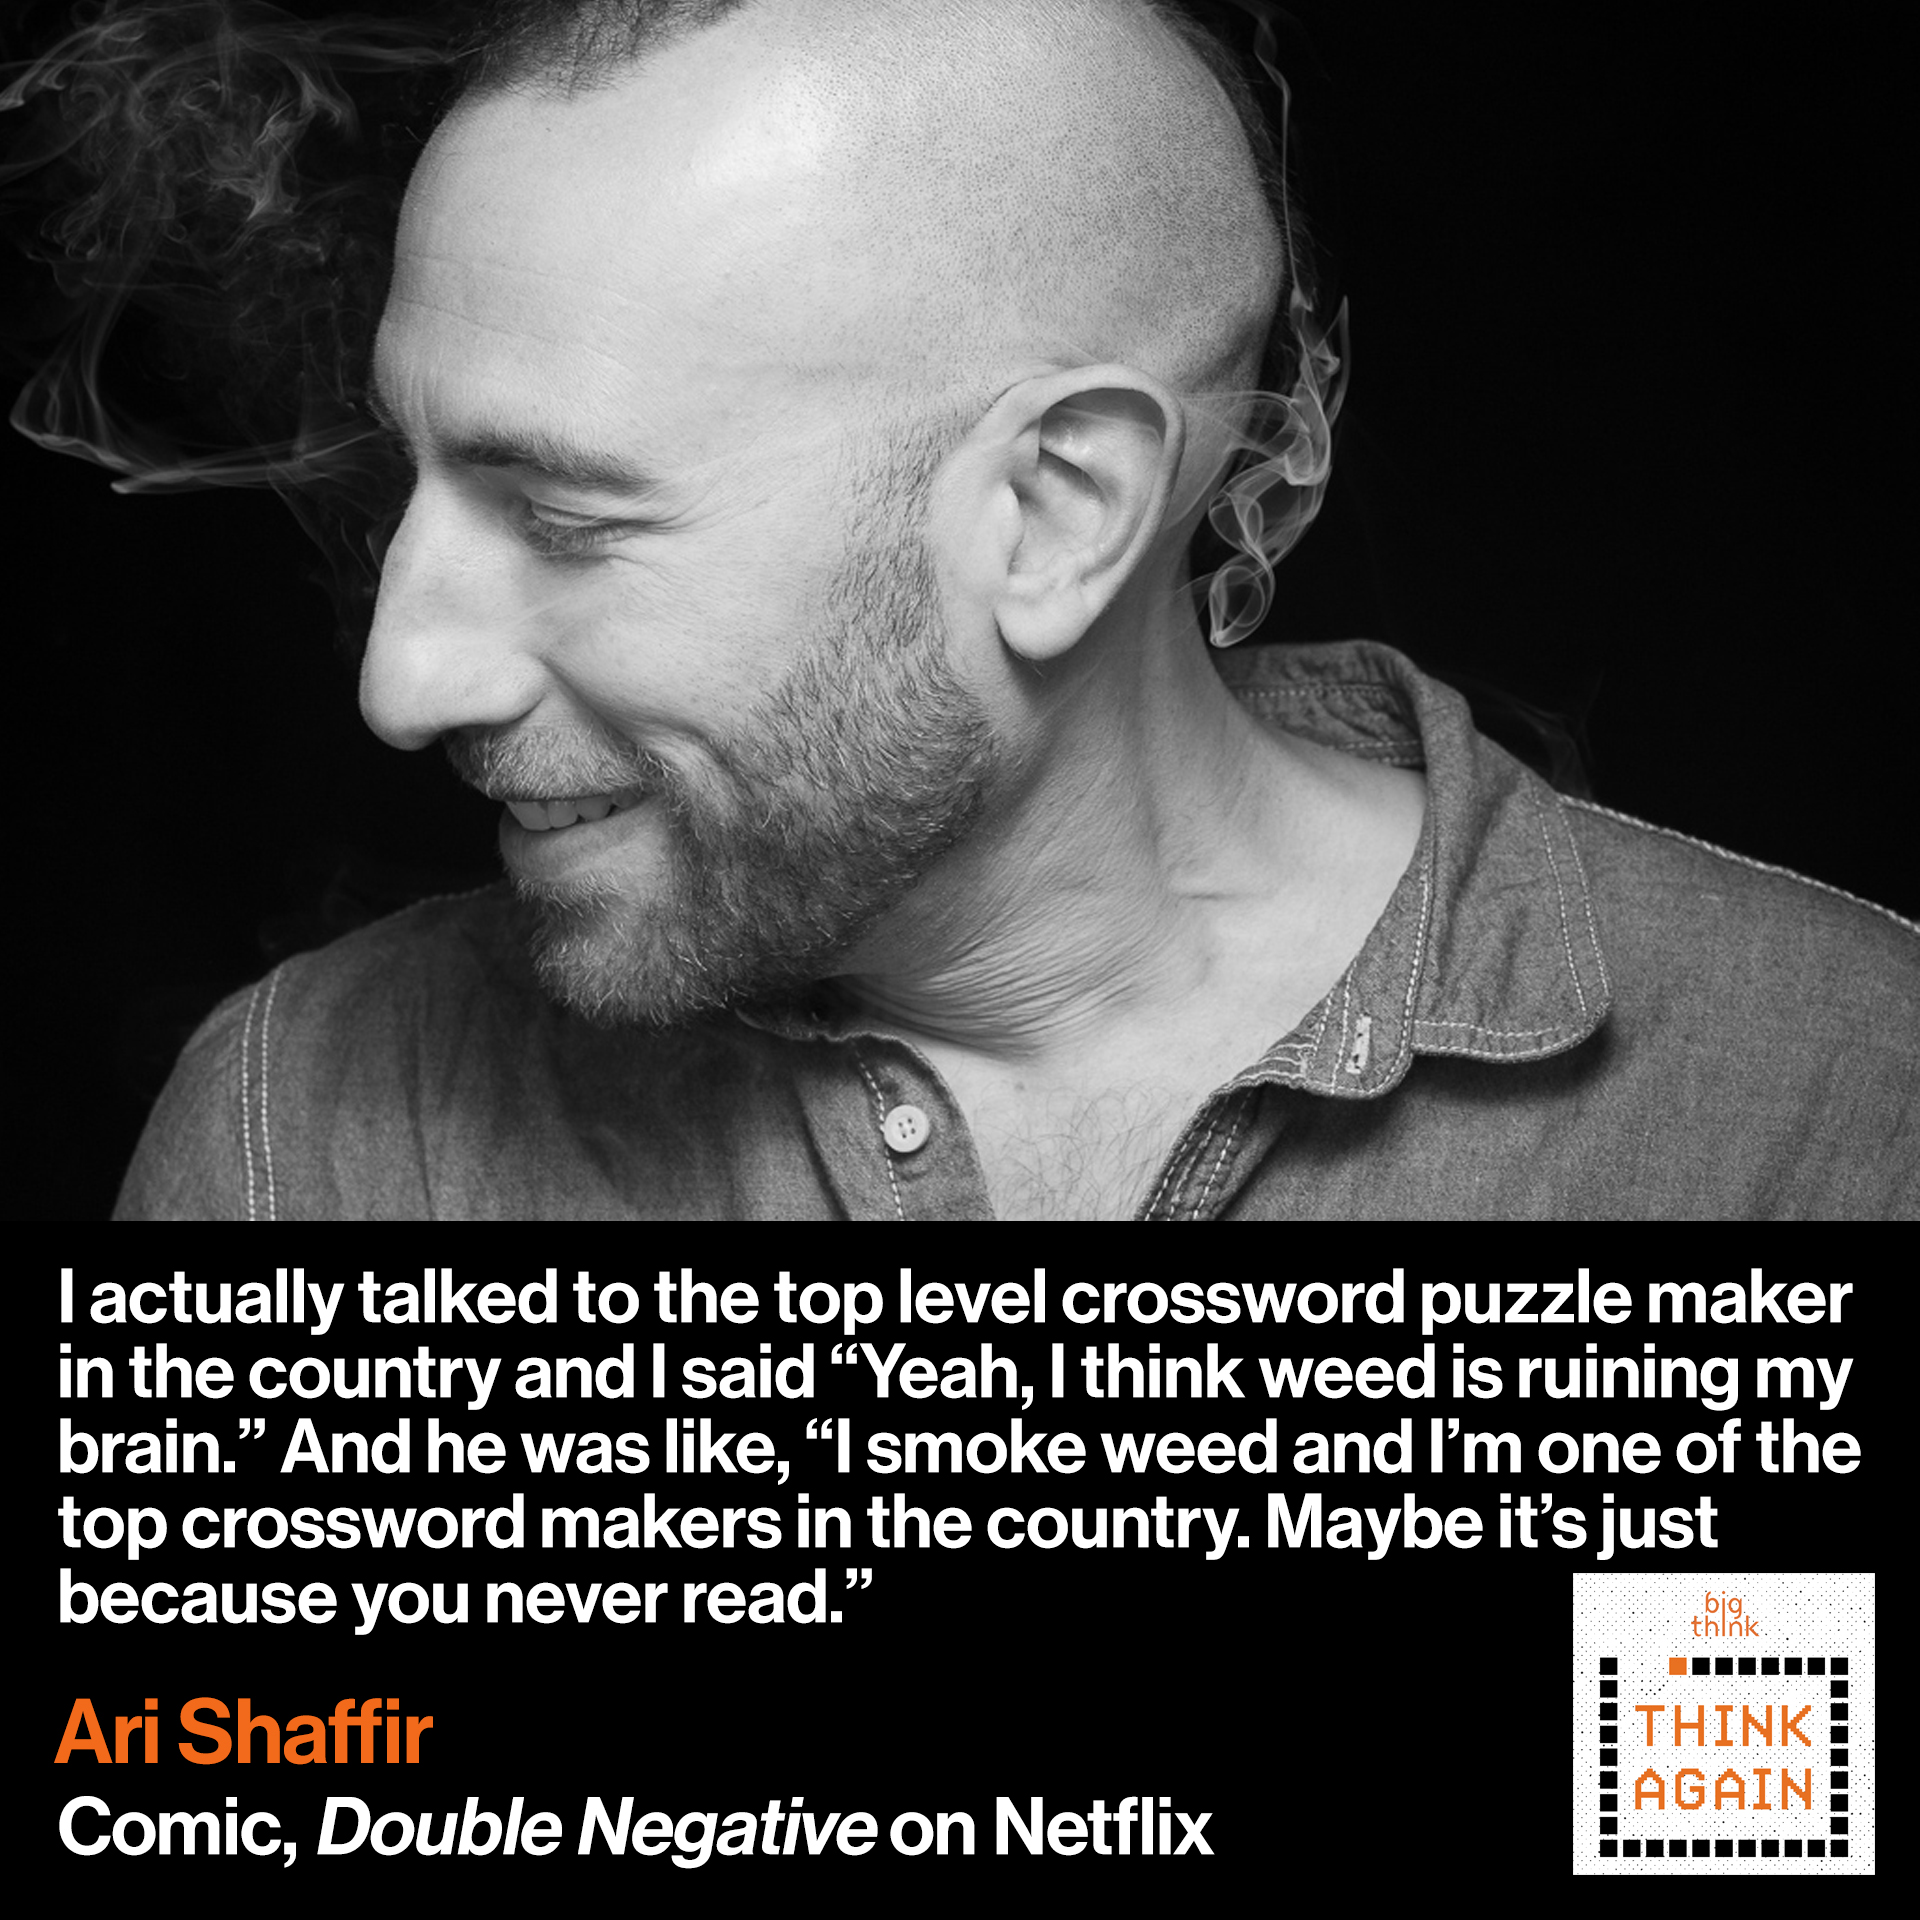 "Ari Shaffir Quote: I actually talked to the top level crossword puzzle maker  And I said ""Yeah, I think weed is ruining my brain.""  And he was like ""I smoke weed and I'm one of the top  crossword makers in the country. Maybe it's just 'cause you  never read."""